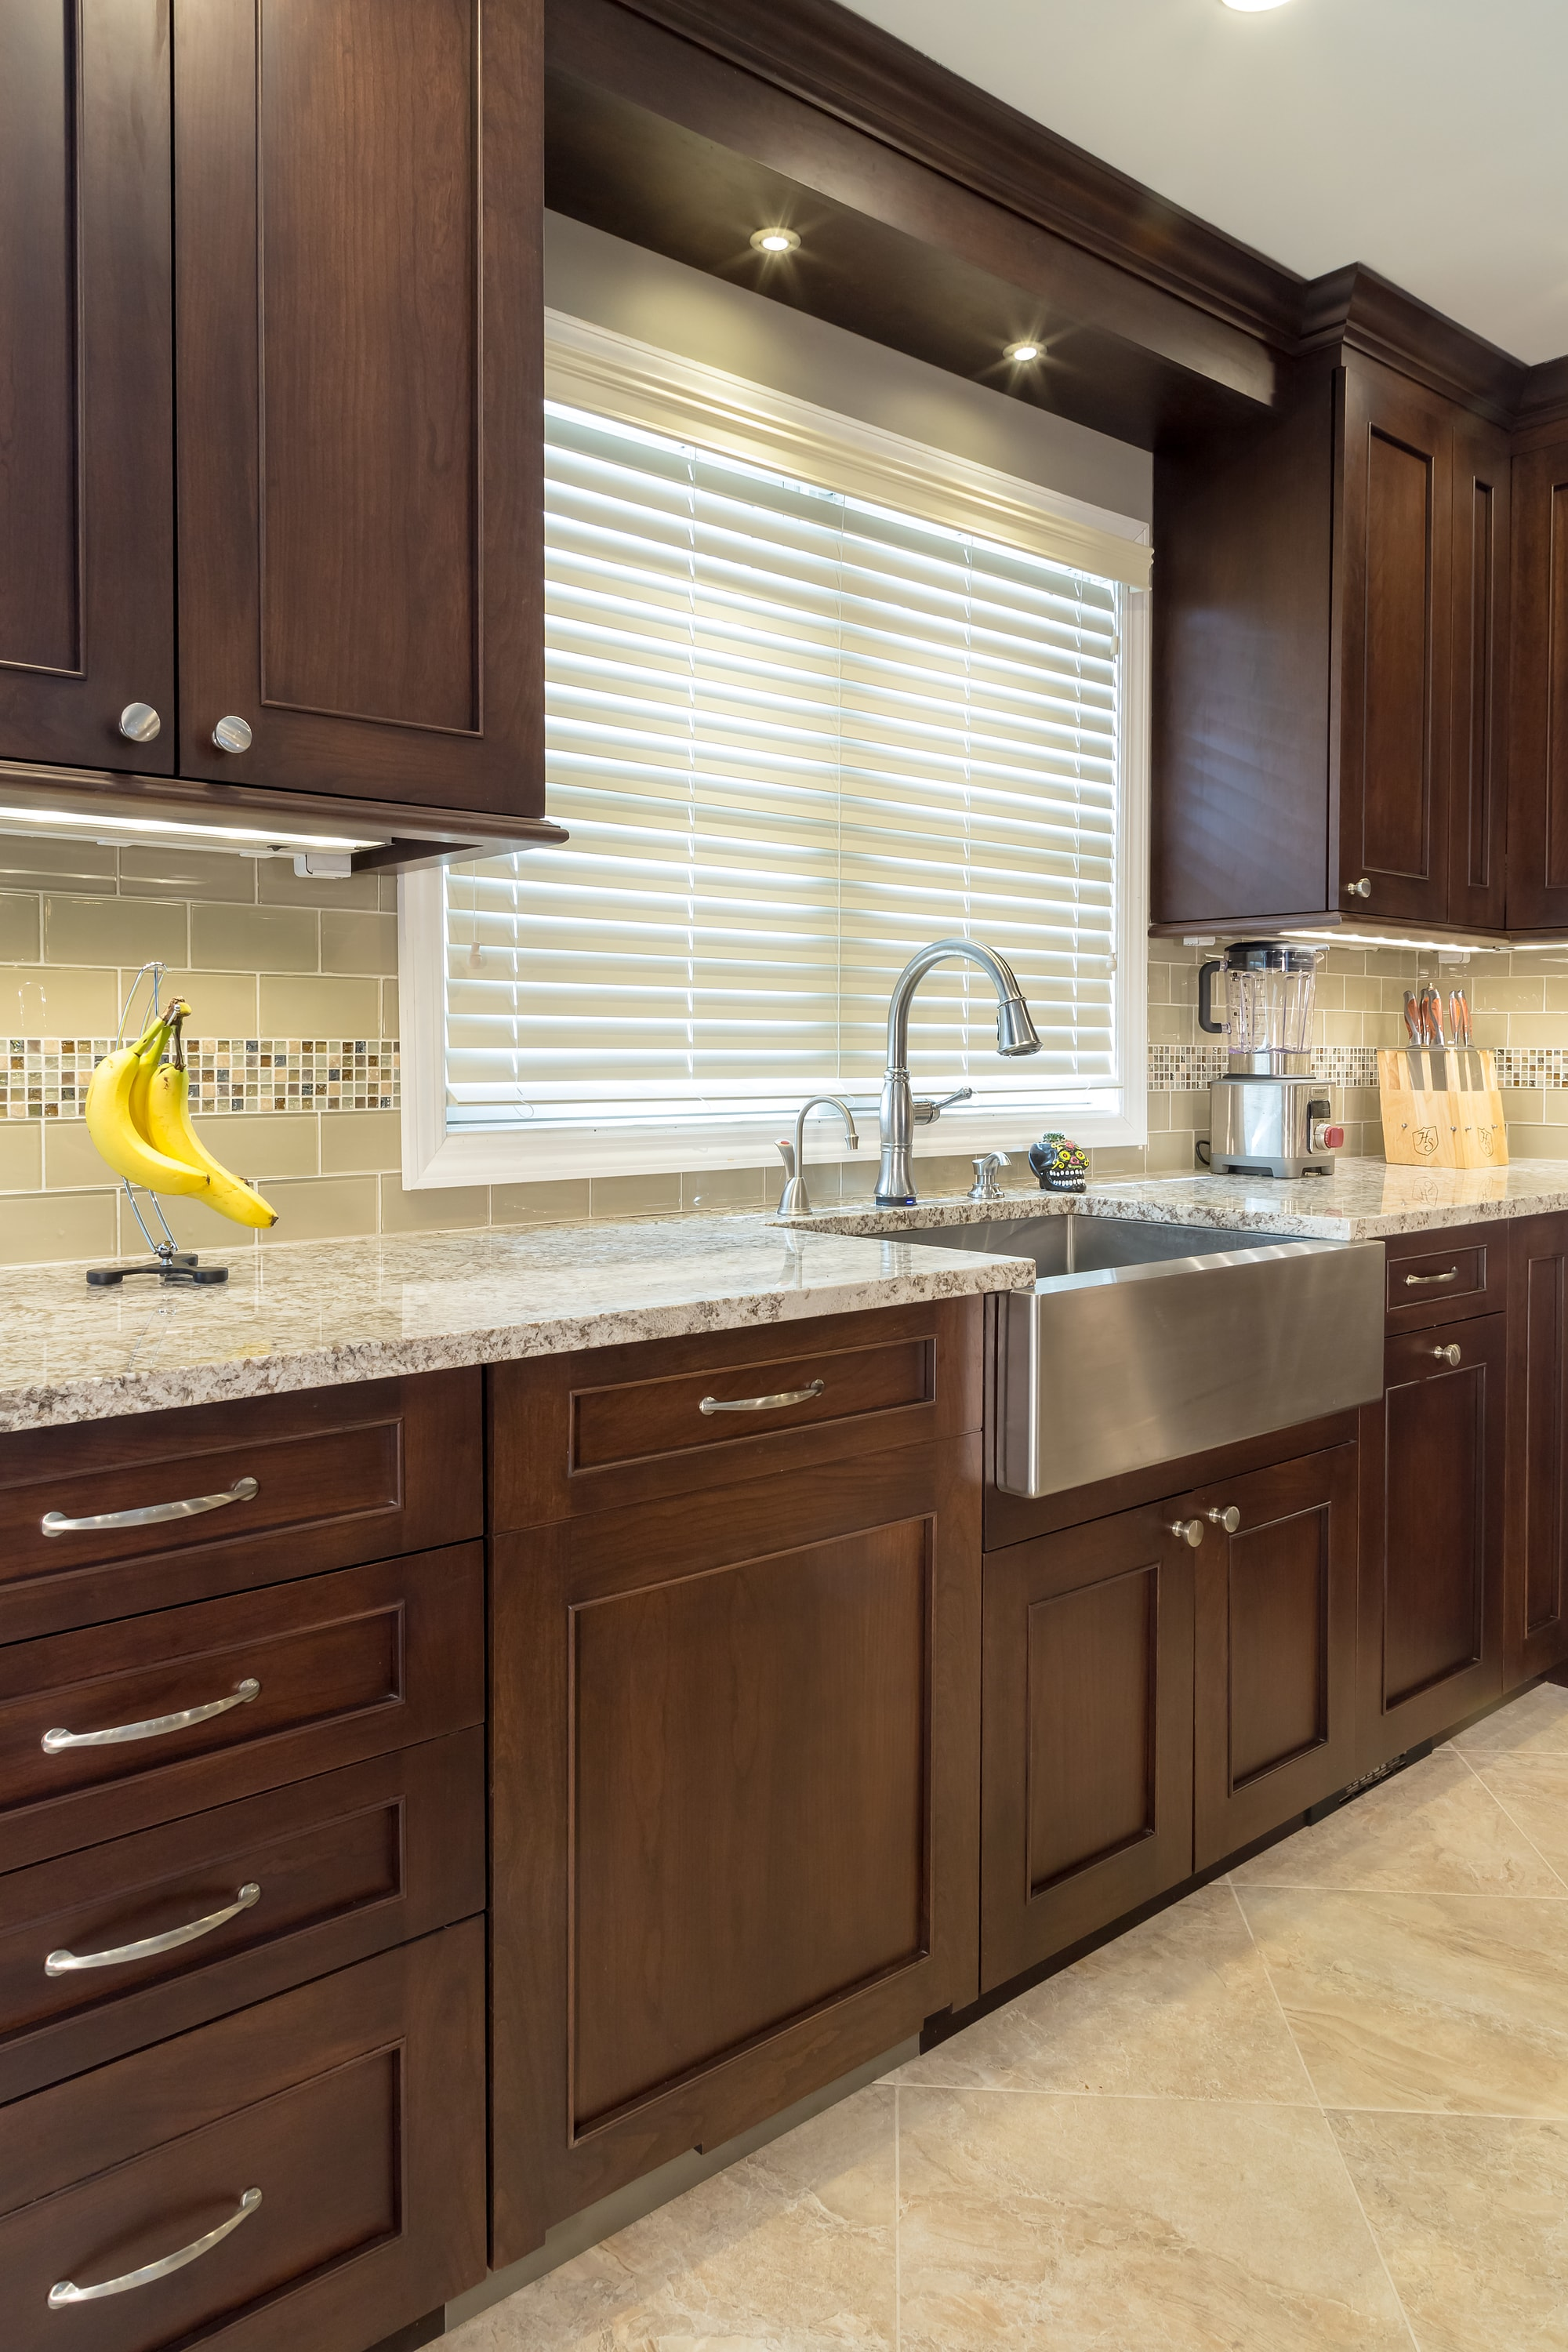 Traditional style kitchen with stainless steel faucet